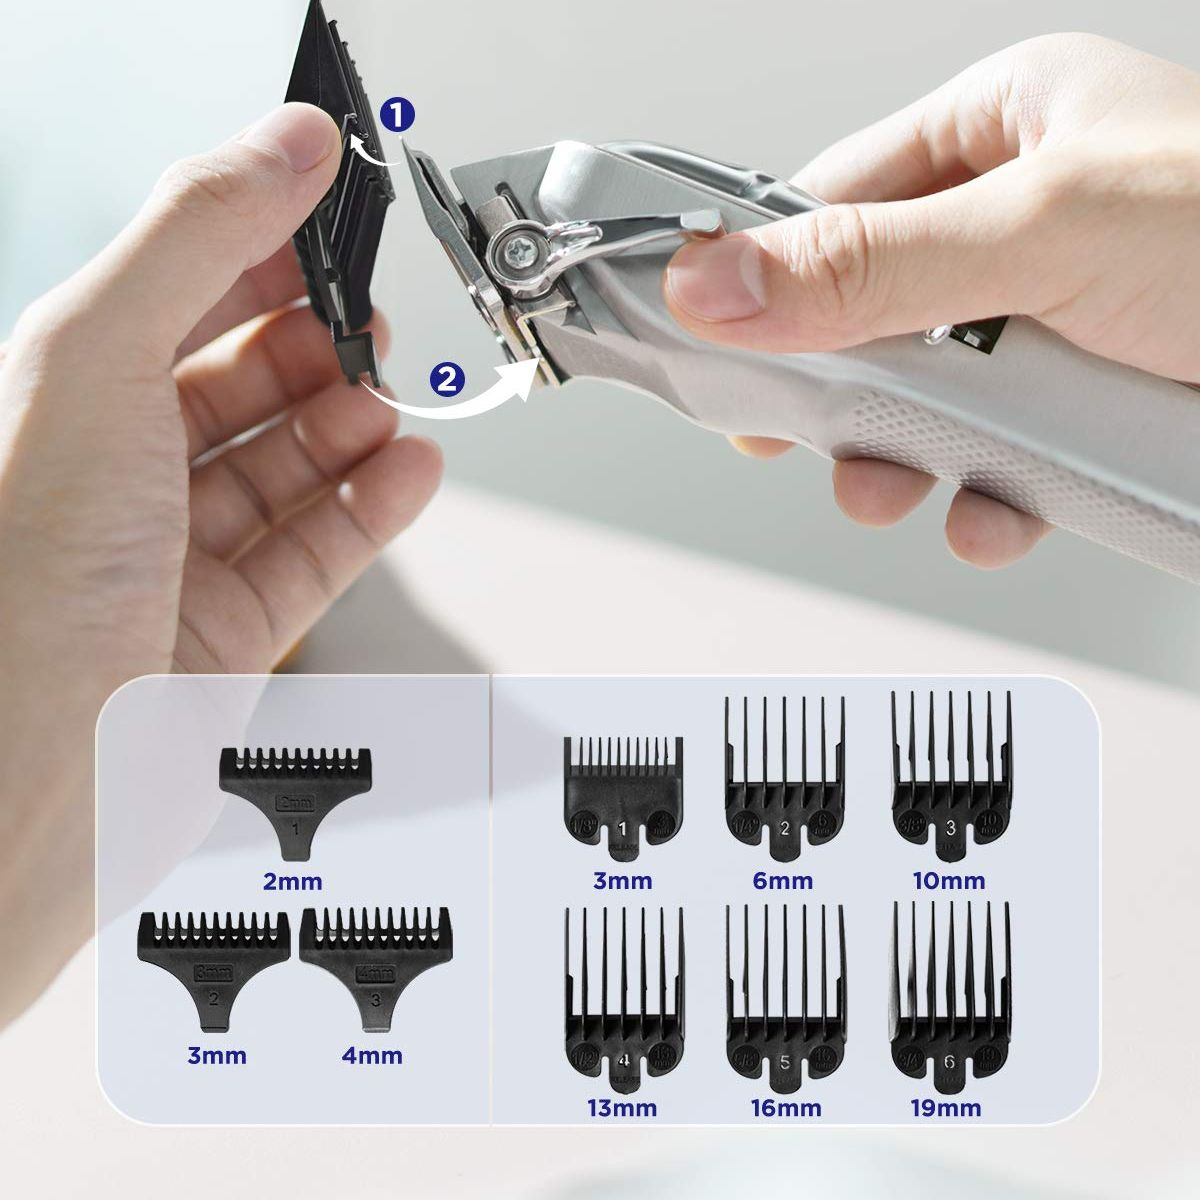 Limural Hair Clippers for Men Professional Hair Cutting Kit Beard Trimmer BarbersCordless Close Cutting T-Blade Trimmer Kit enlarge